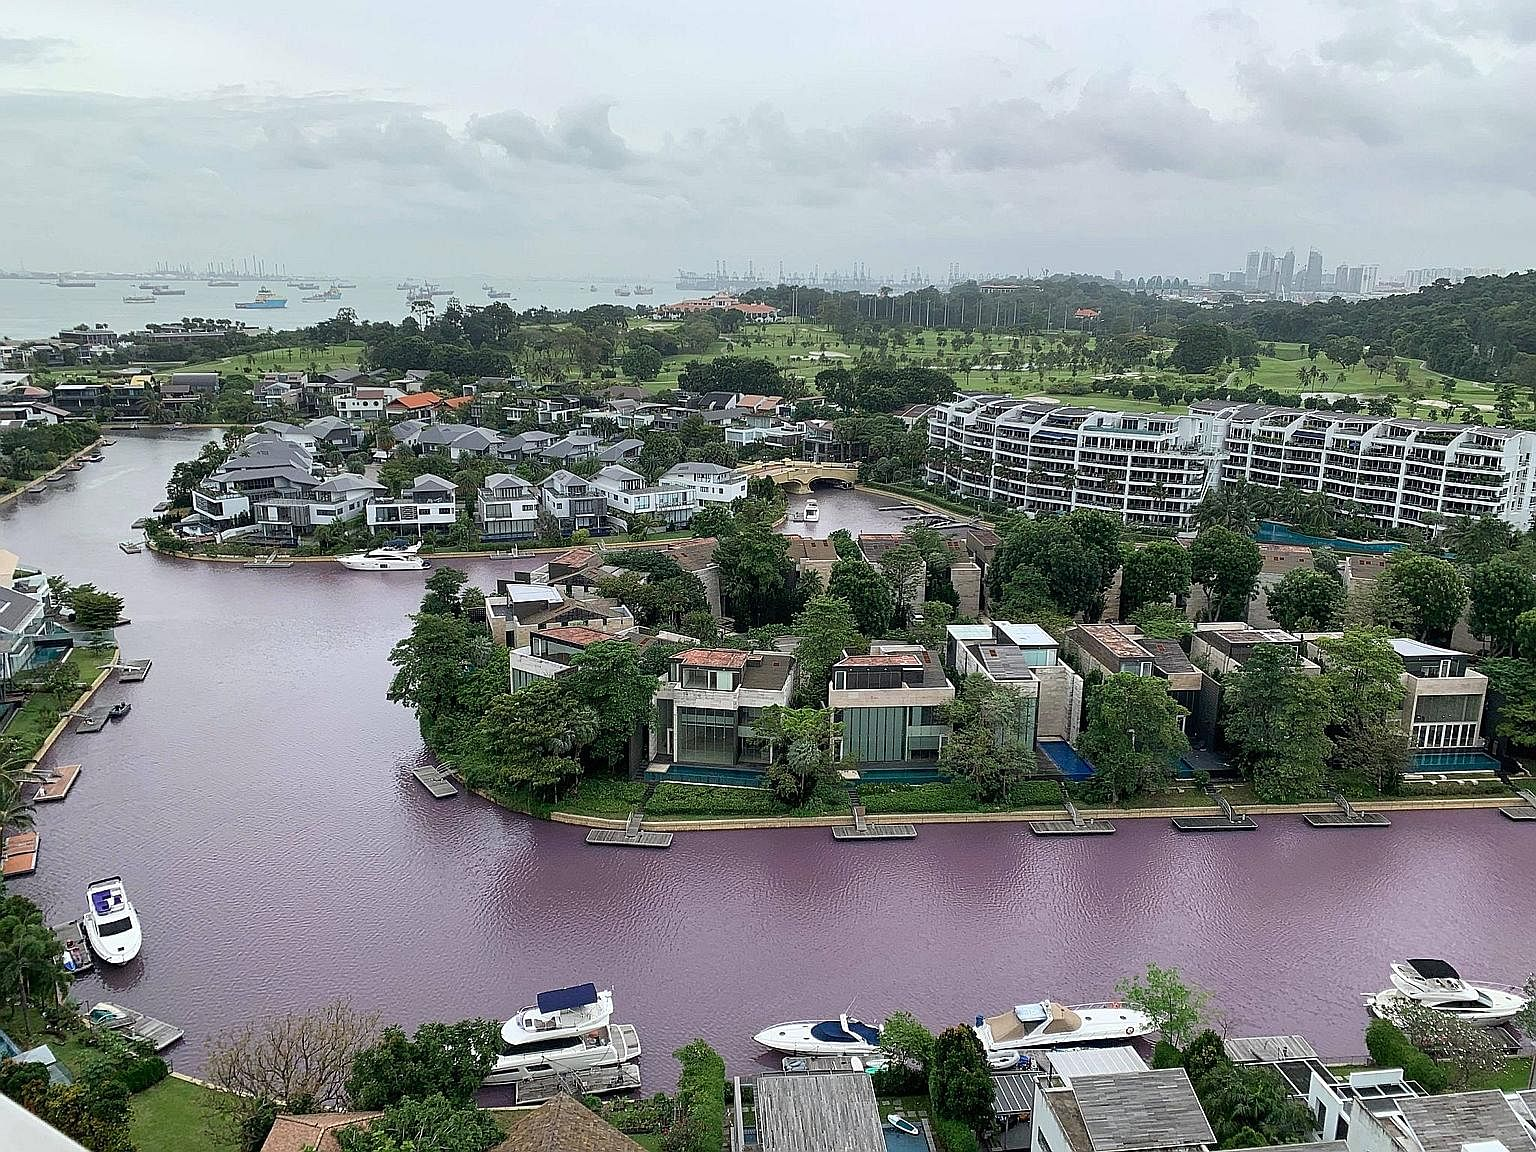 The waterway running through Sentosa South Cove at about 3pm yesterday appeared pinkish-purple. Dr Sandric Leong, senior research fellow at the National University of Singapore's Tropical Marine Science Institute, said the coloured water was caused b